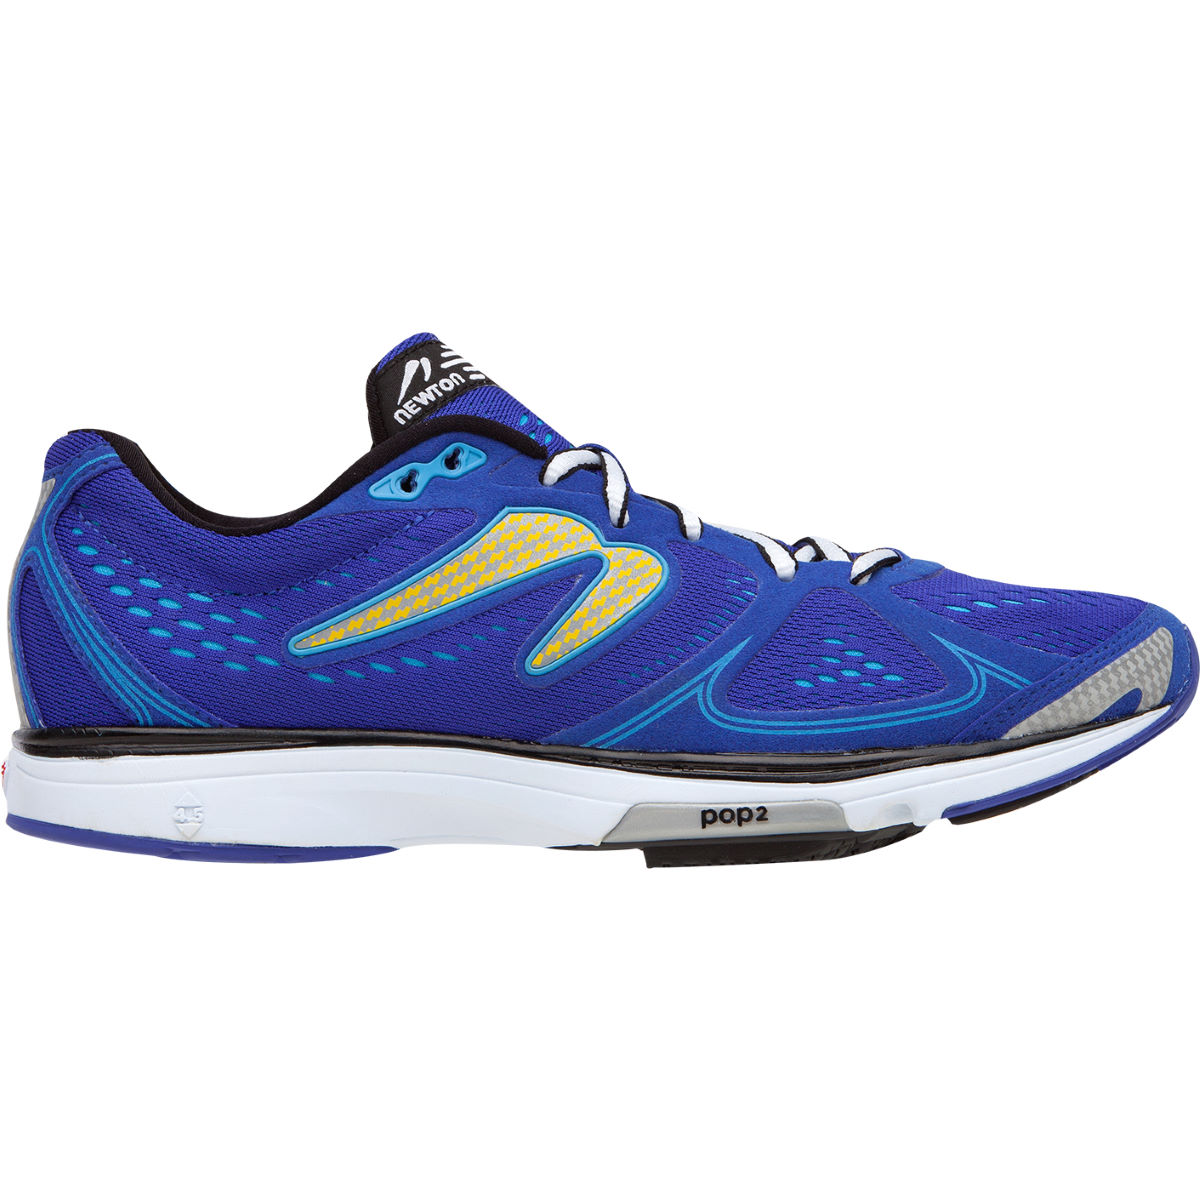 Chaussures Newton Running Fate (AH15) - 11 UK Bleu Chaussures de running amorties